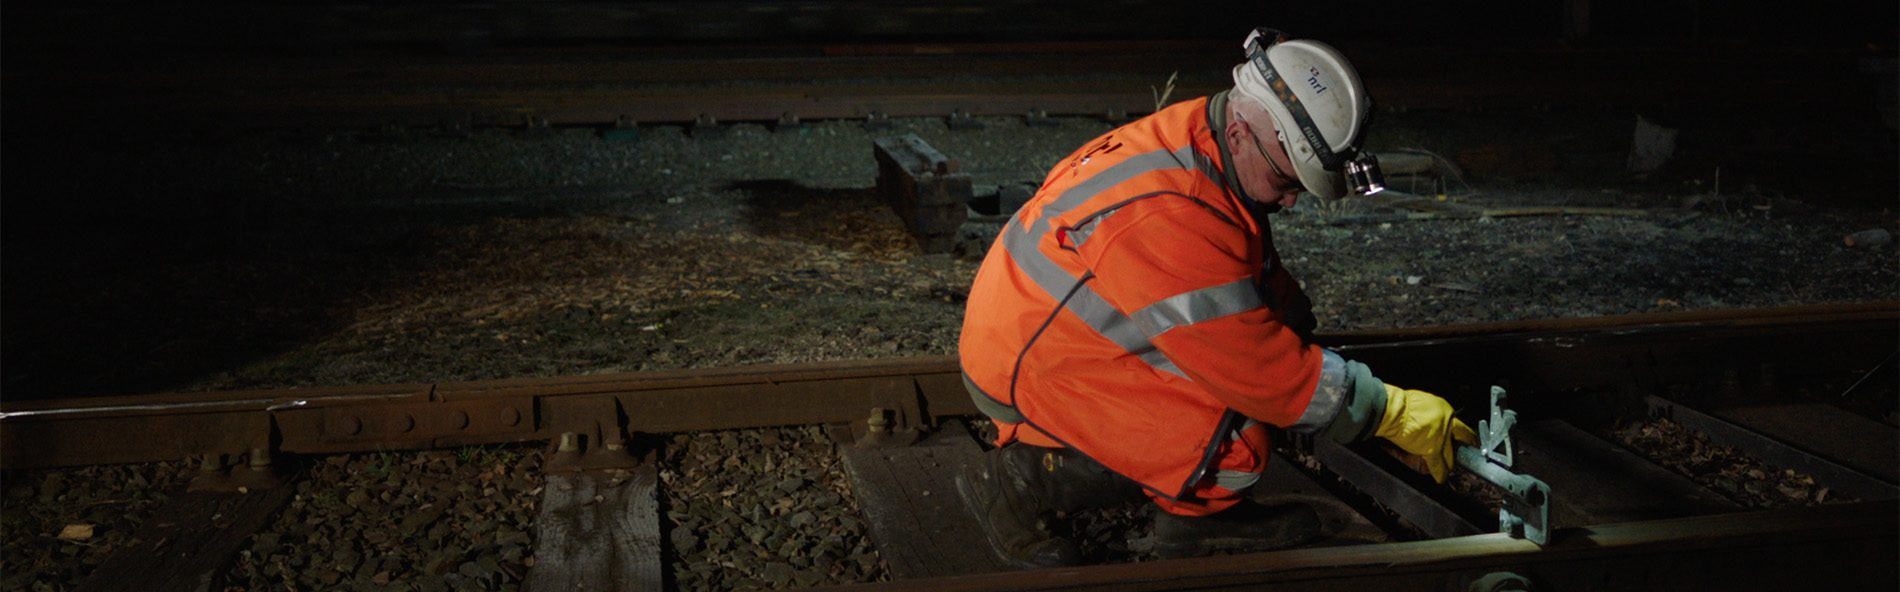 NRL awarded Network Rail Ground Support contract